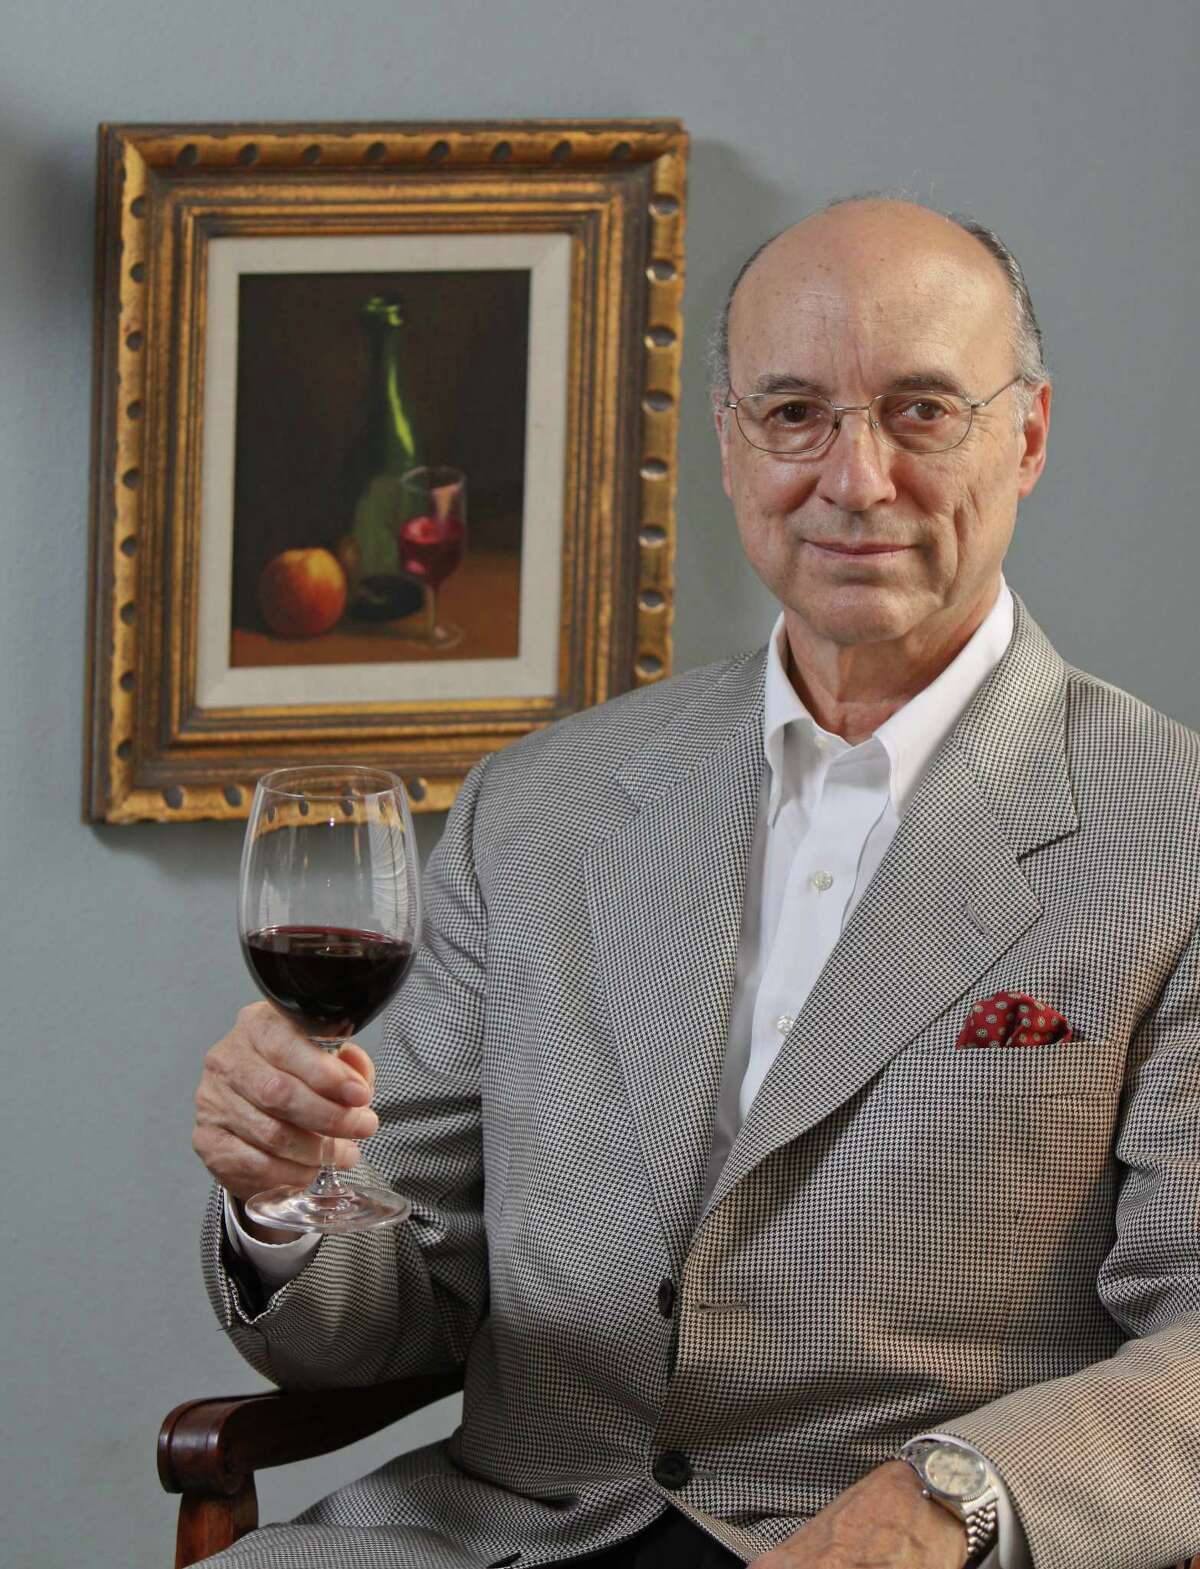 (For the Chronicle/Gary Fountain, April 4, 2012) Denman Moody enoying a glass of wine. He is sitting by a oil painting by his wife, painted prior to their meeting each other.